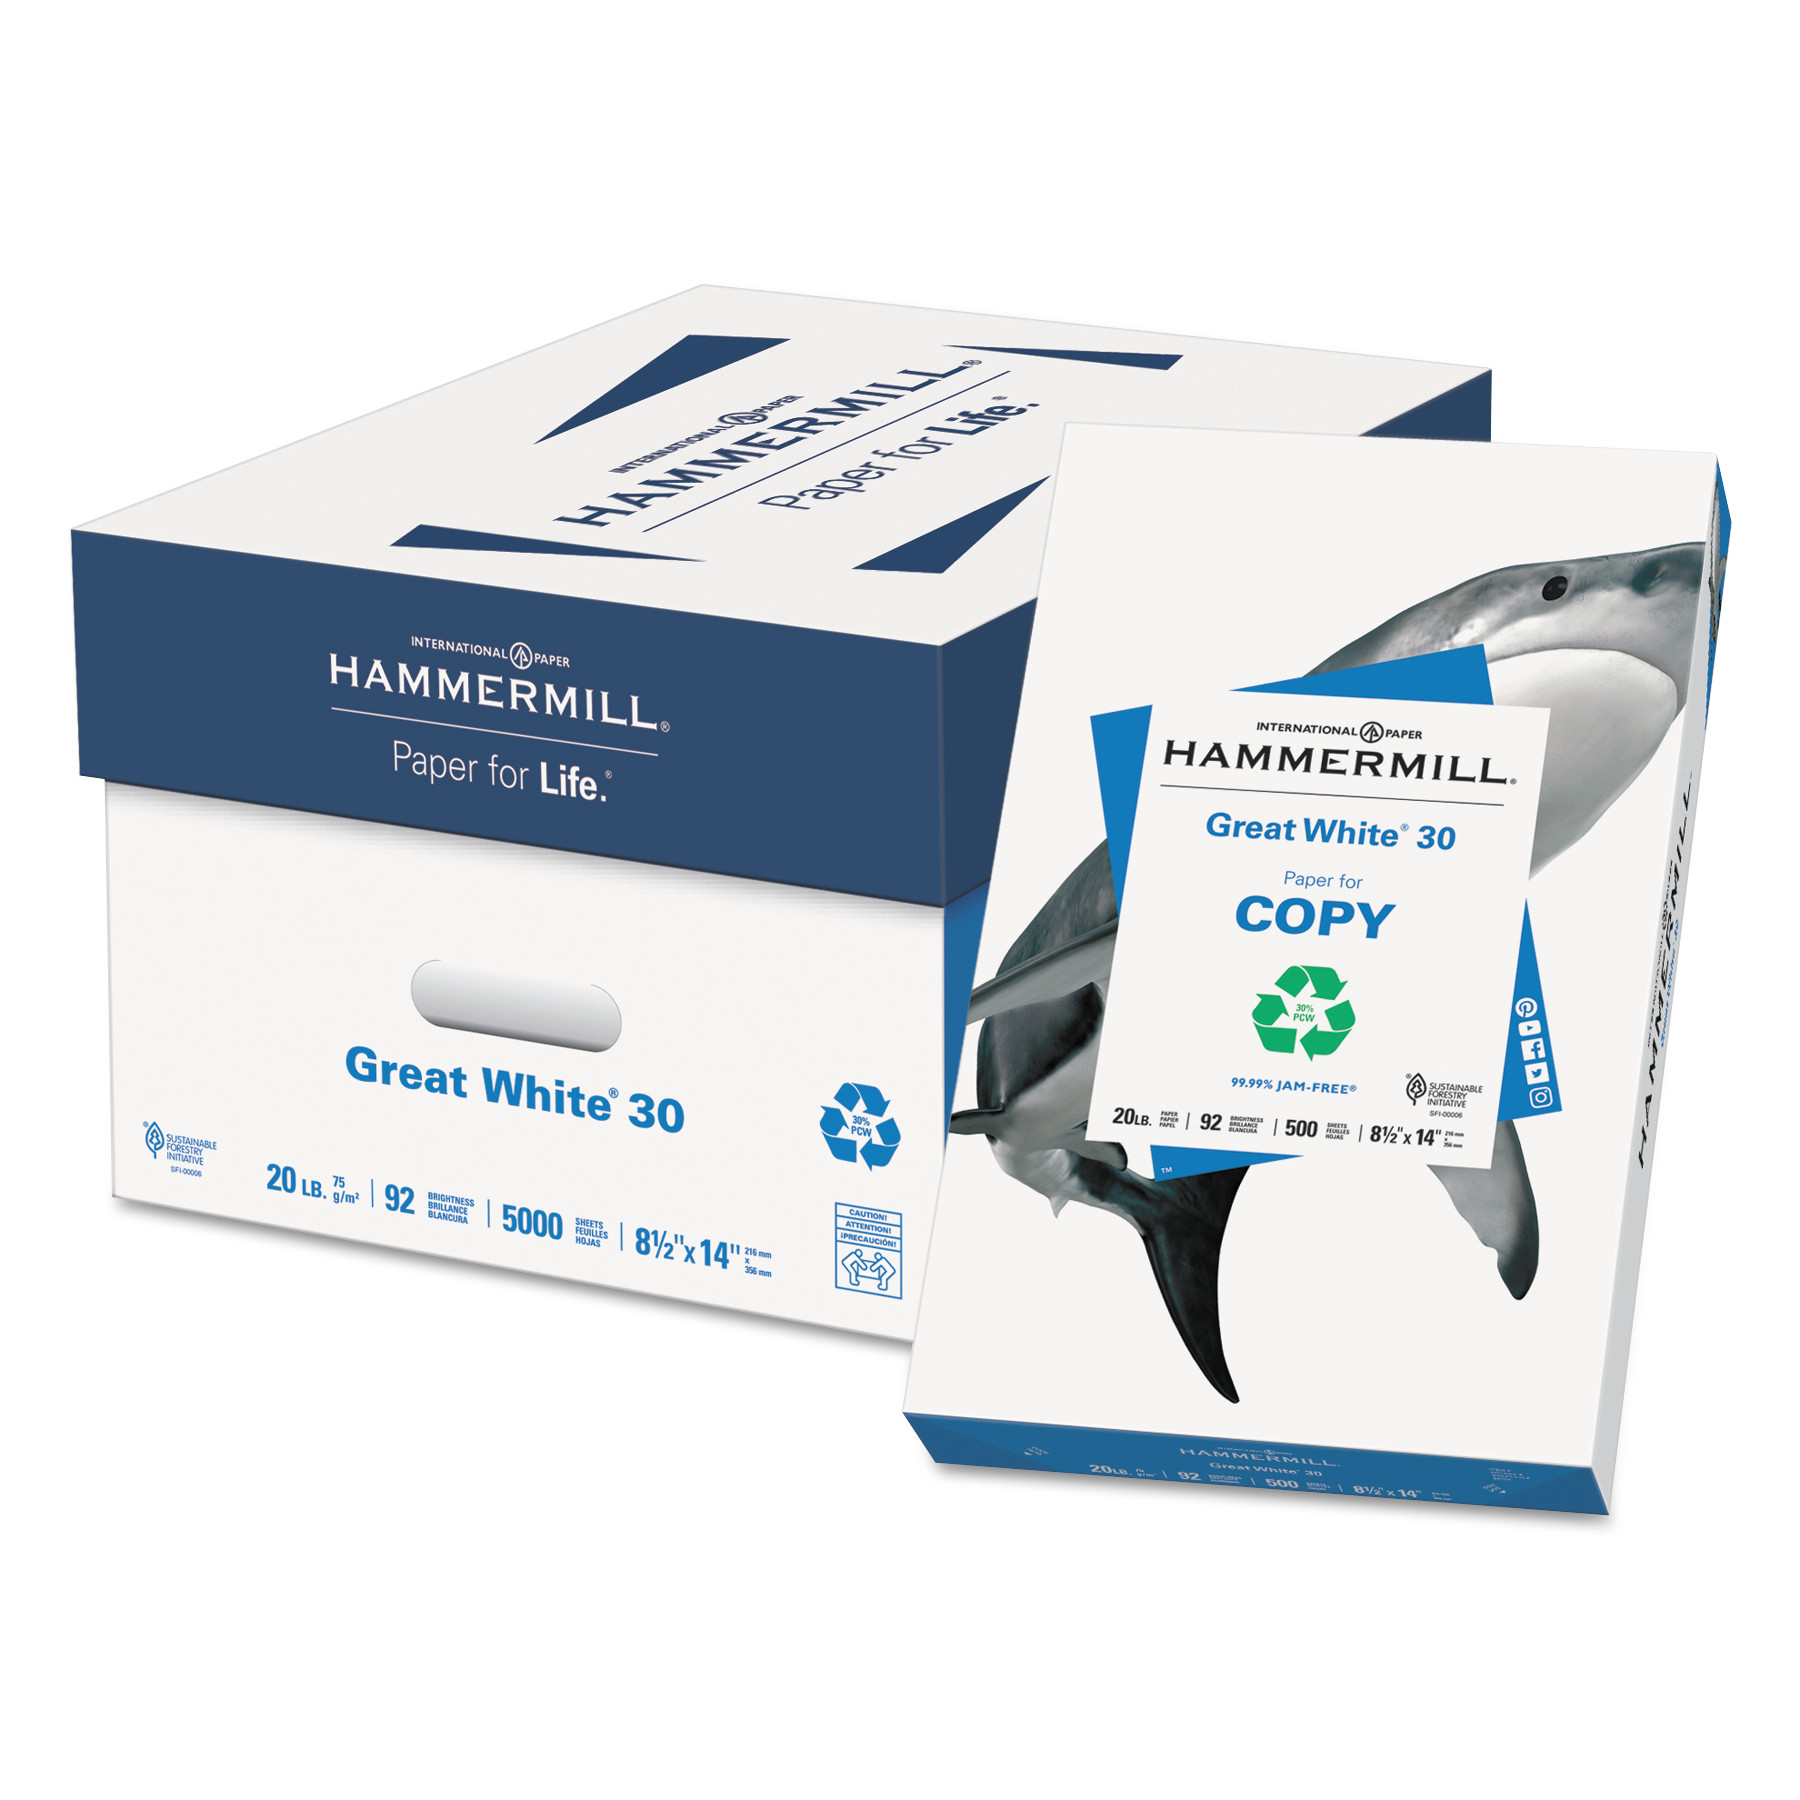 Hammermill Great White 30 Recycled Paper, 92 Bright, 20lb, 8-1/2 x 14, 500 Sheets/Ream -HAM86704